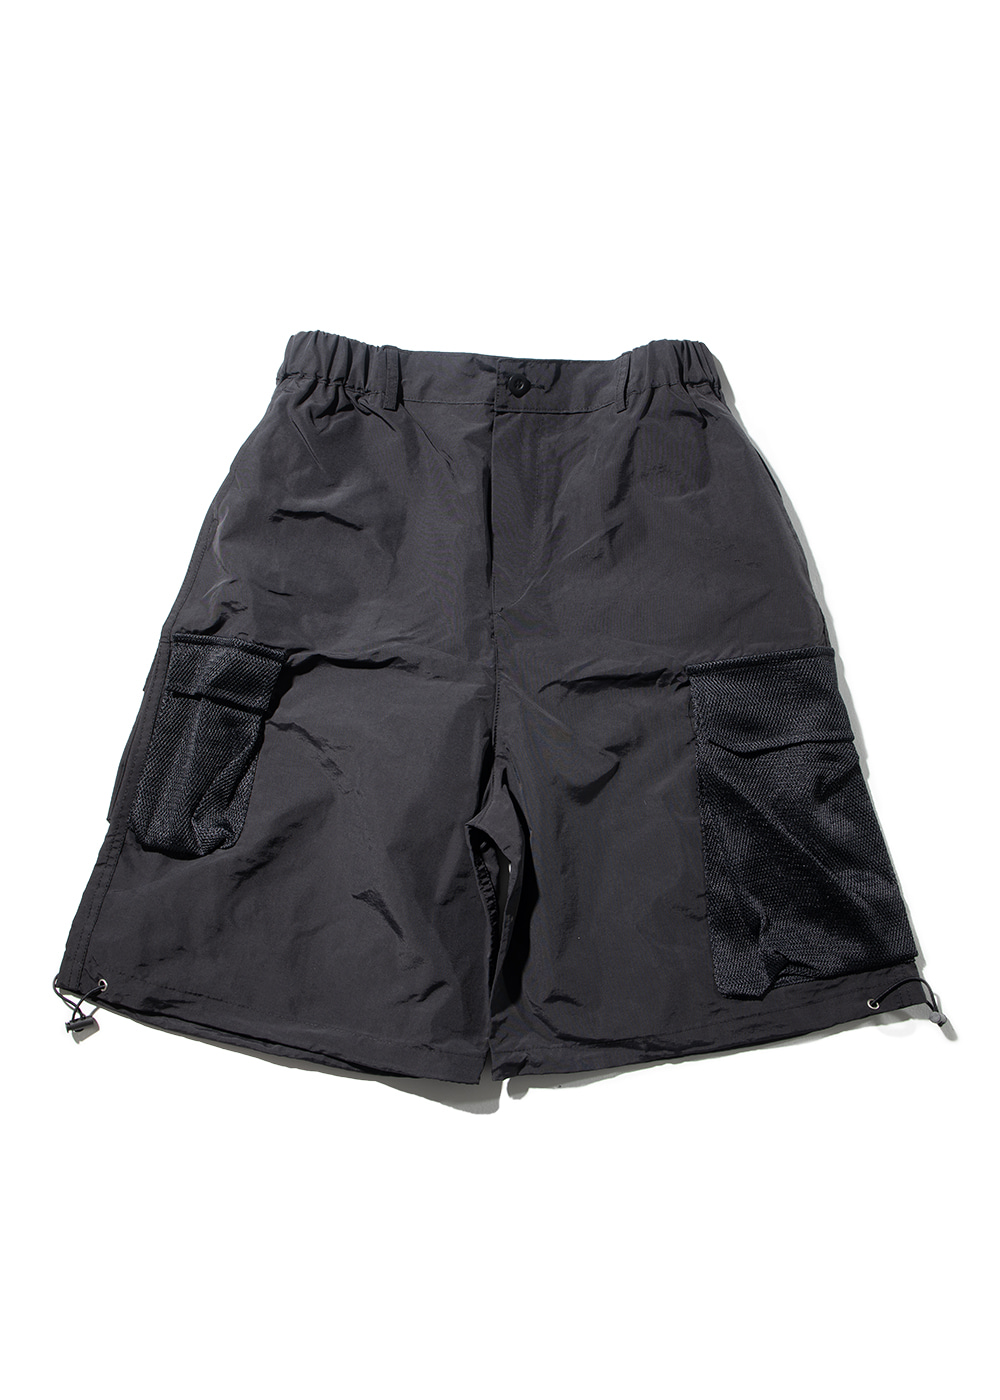 MESH CARGO POCKET SHORT PANTS MUZSP002-BK